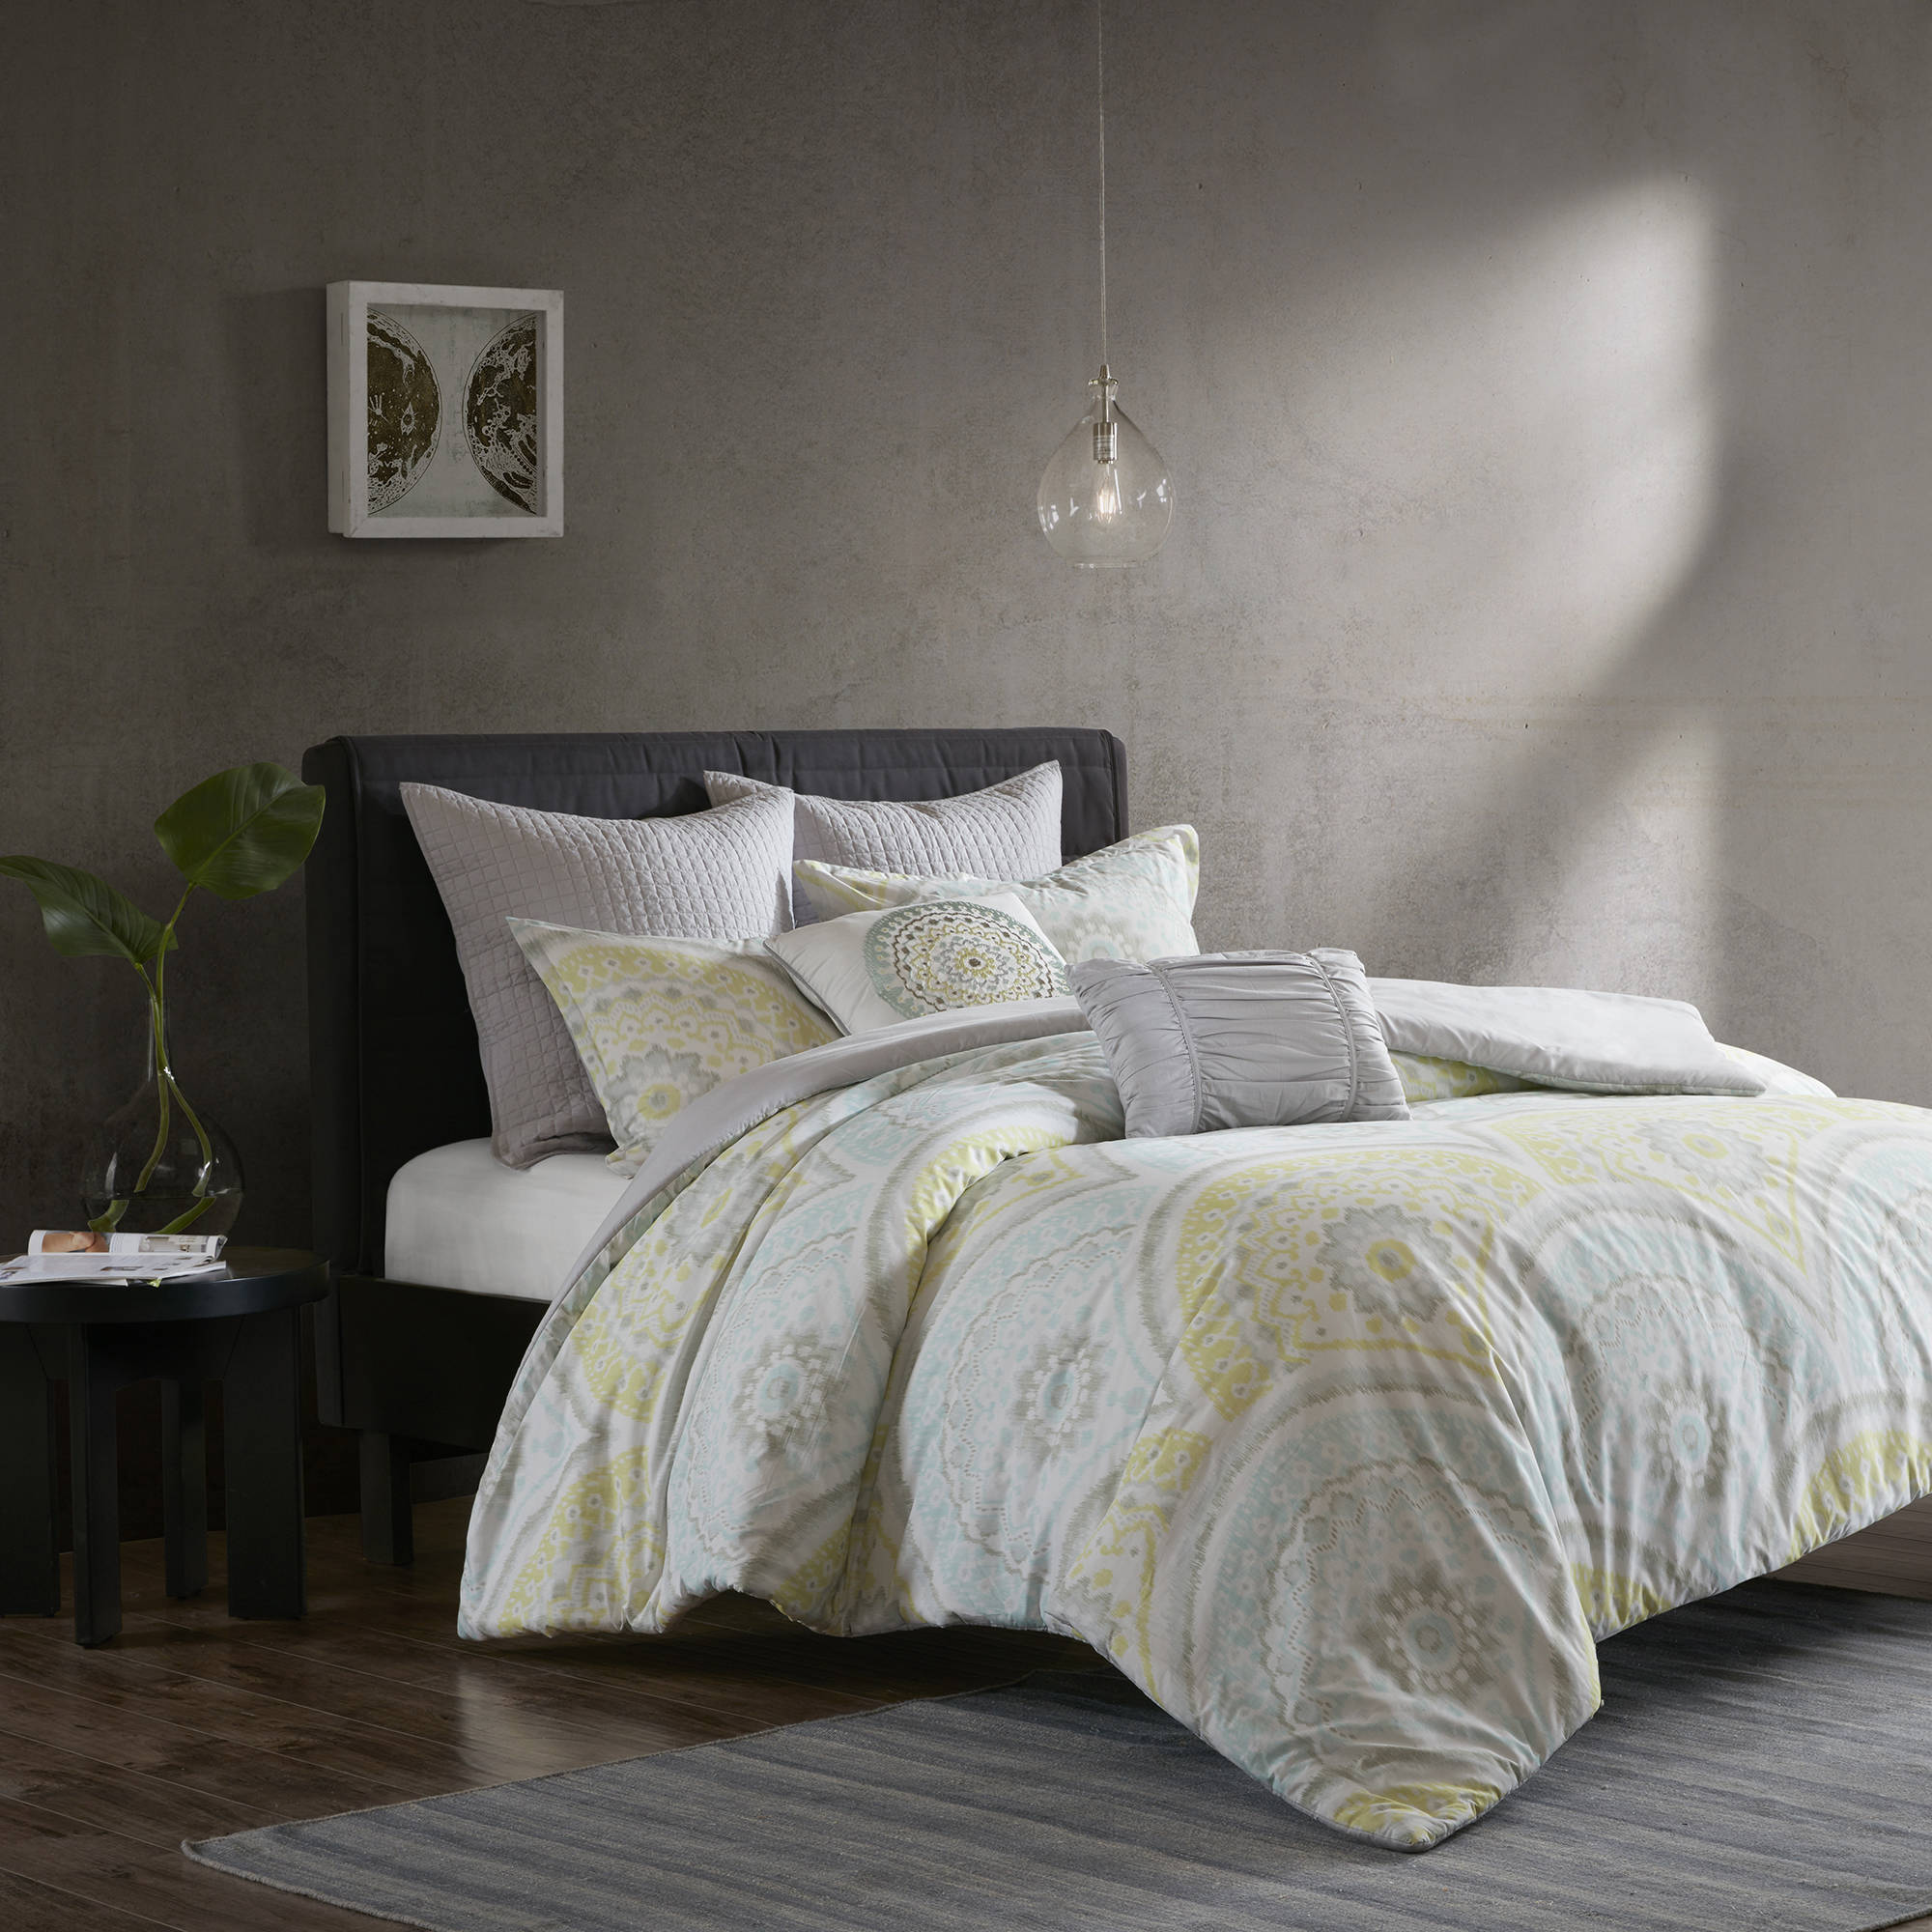 Home Essence Apartment Leyla 7 Piece Cotton Duvet Cover Set